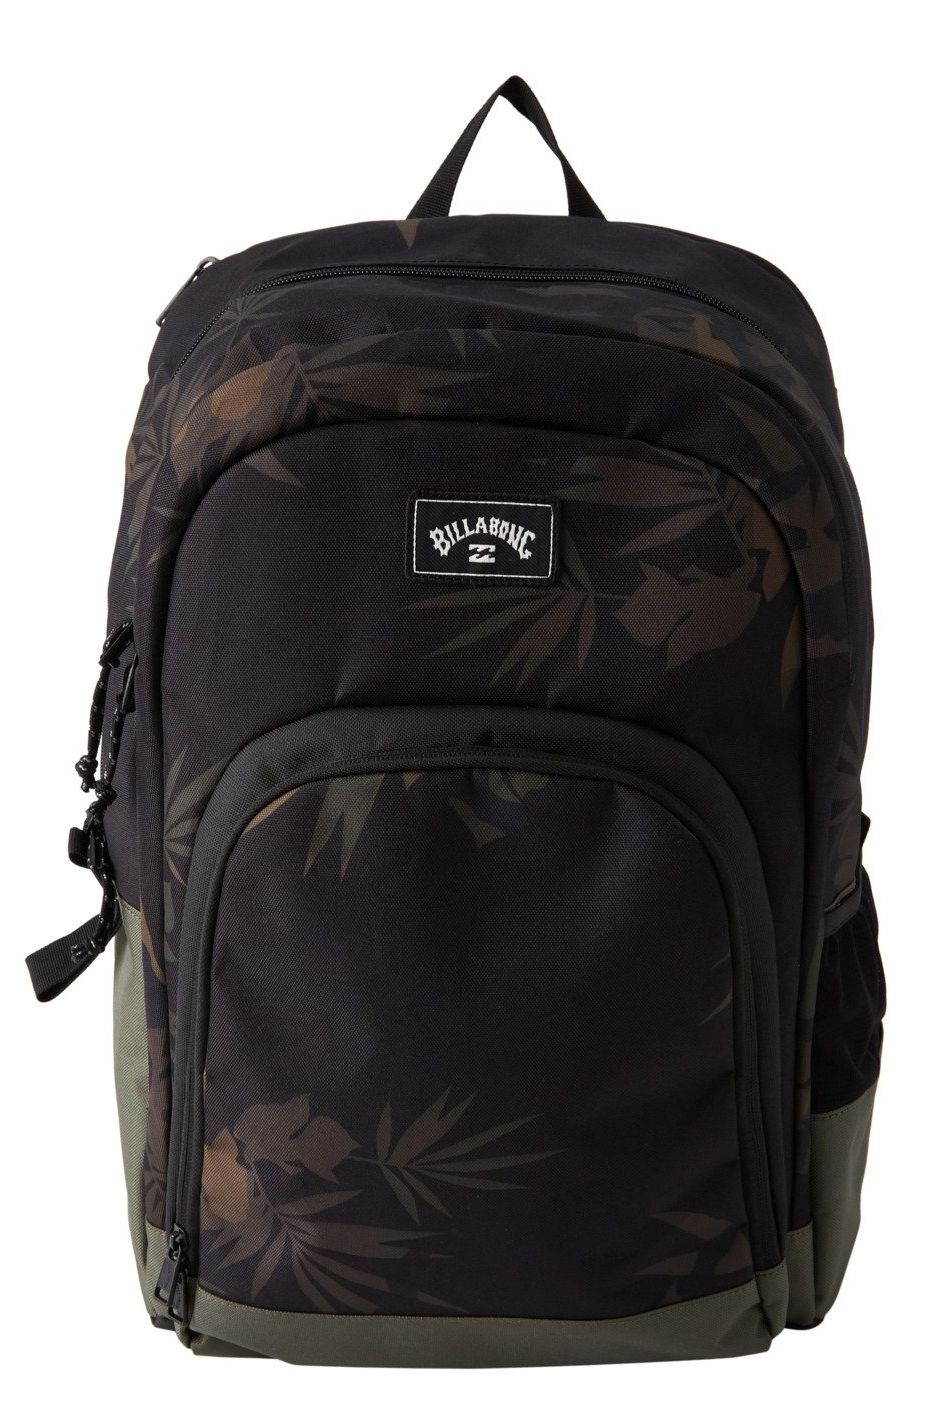 Mochila Billabong COMMAND PACK Military Camo